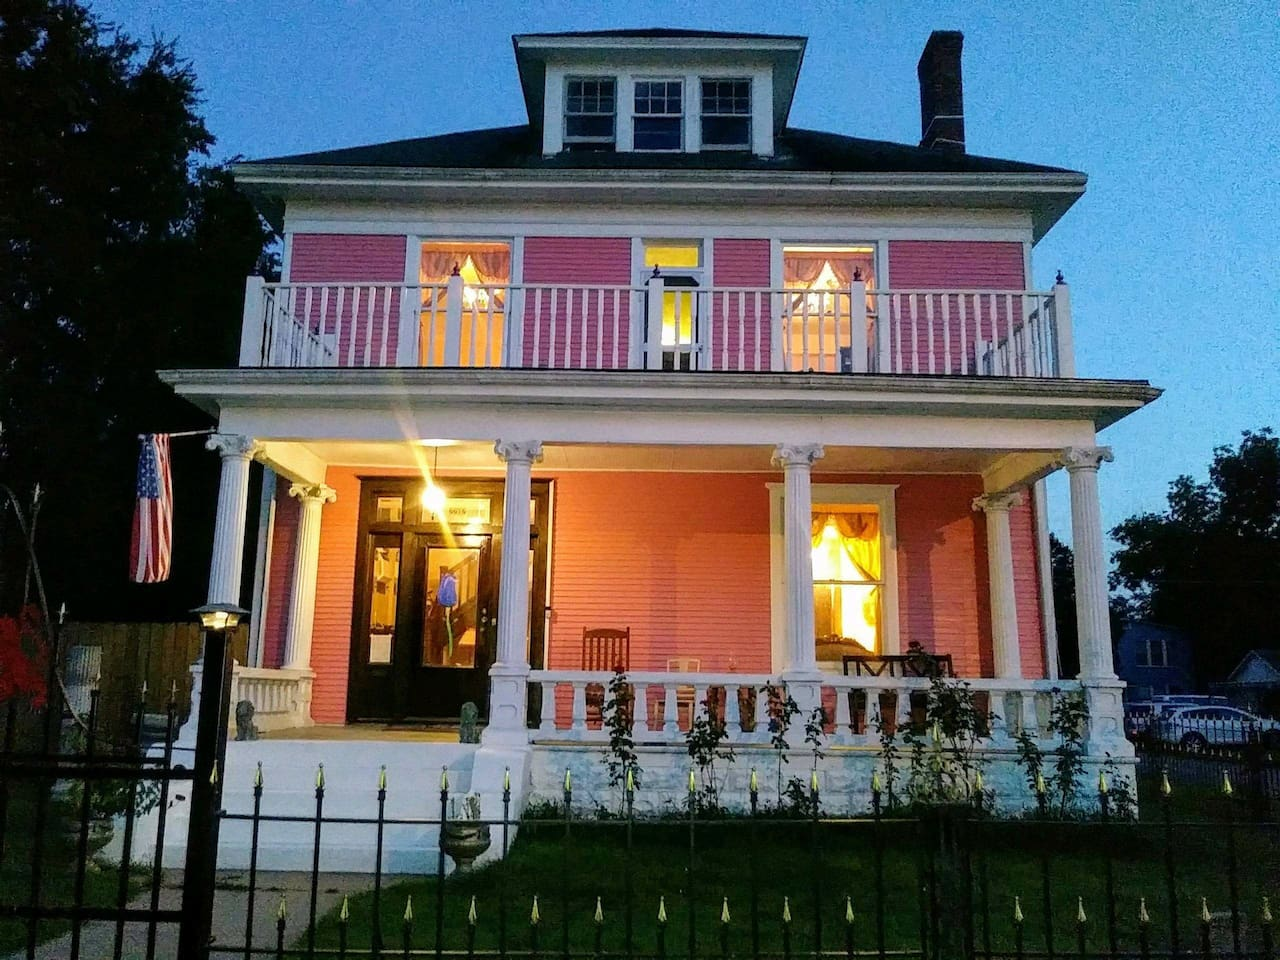 Historic turn of the century Colonial Revival mansion. Built circa 1889